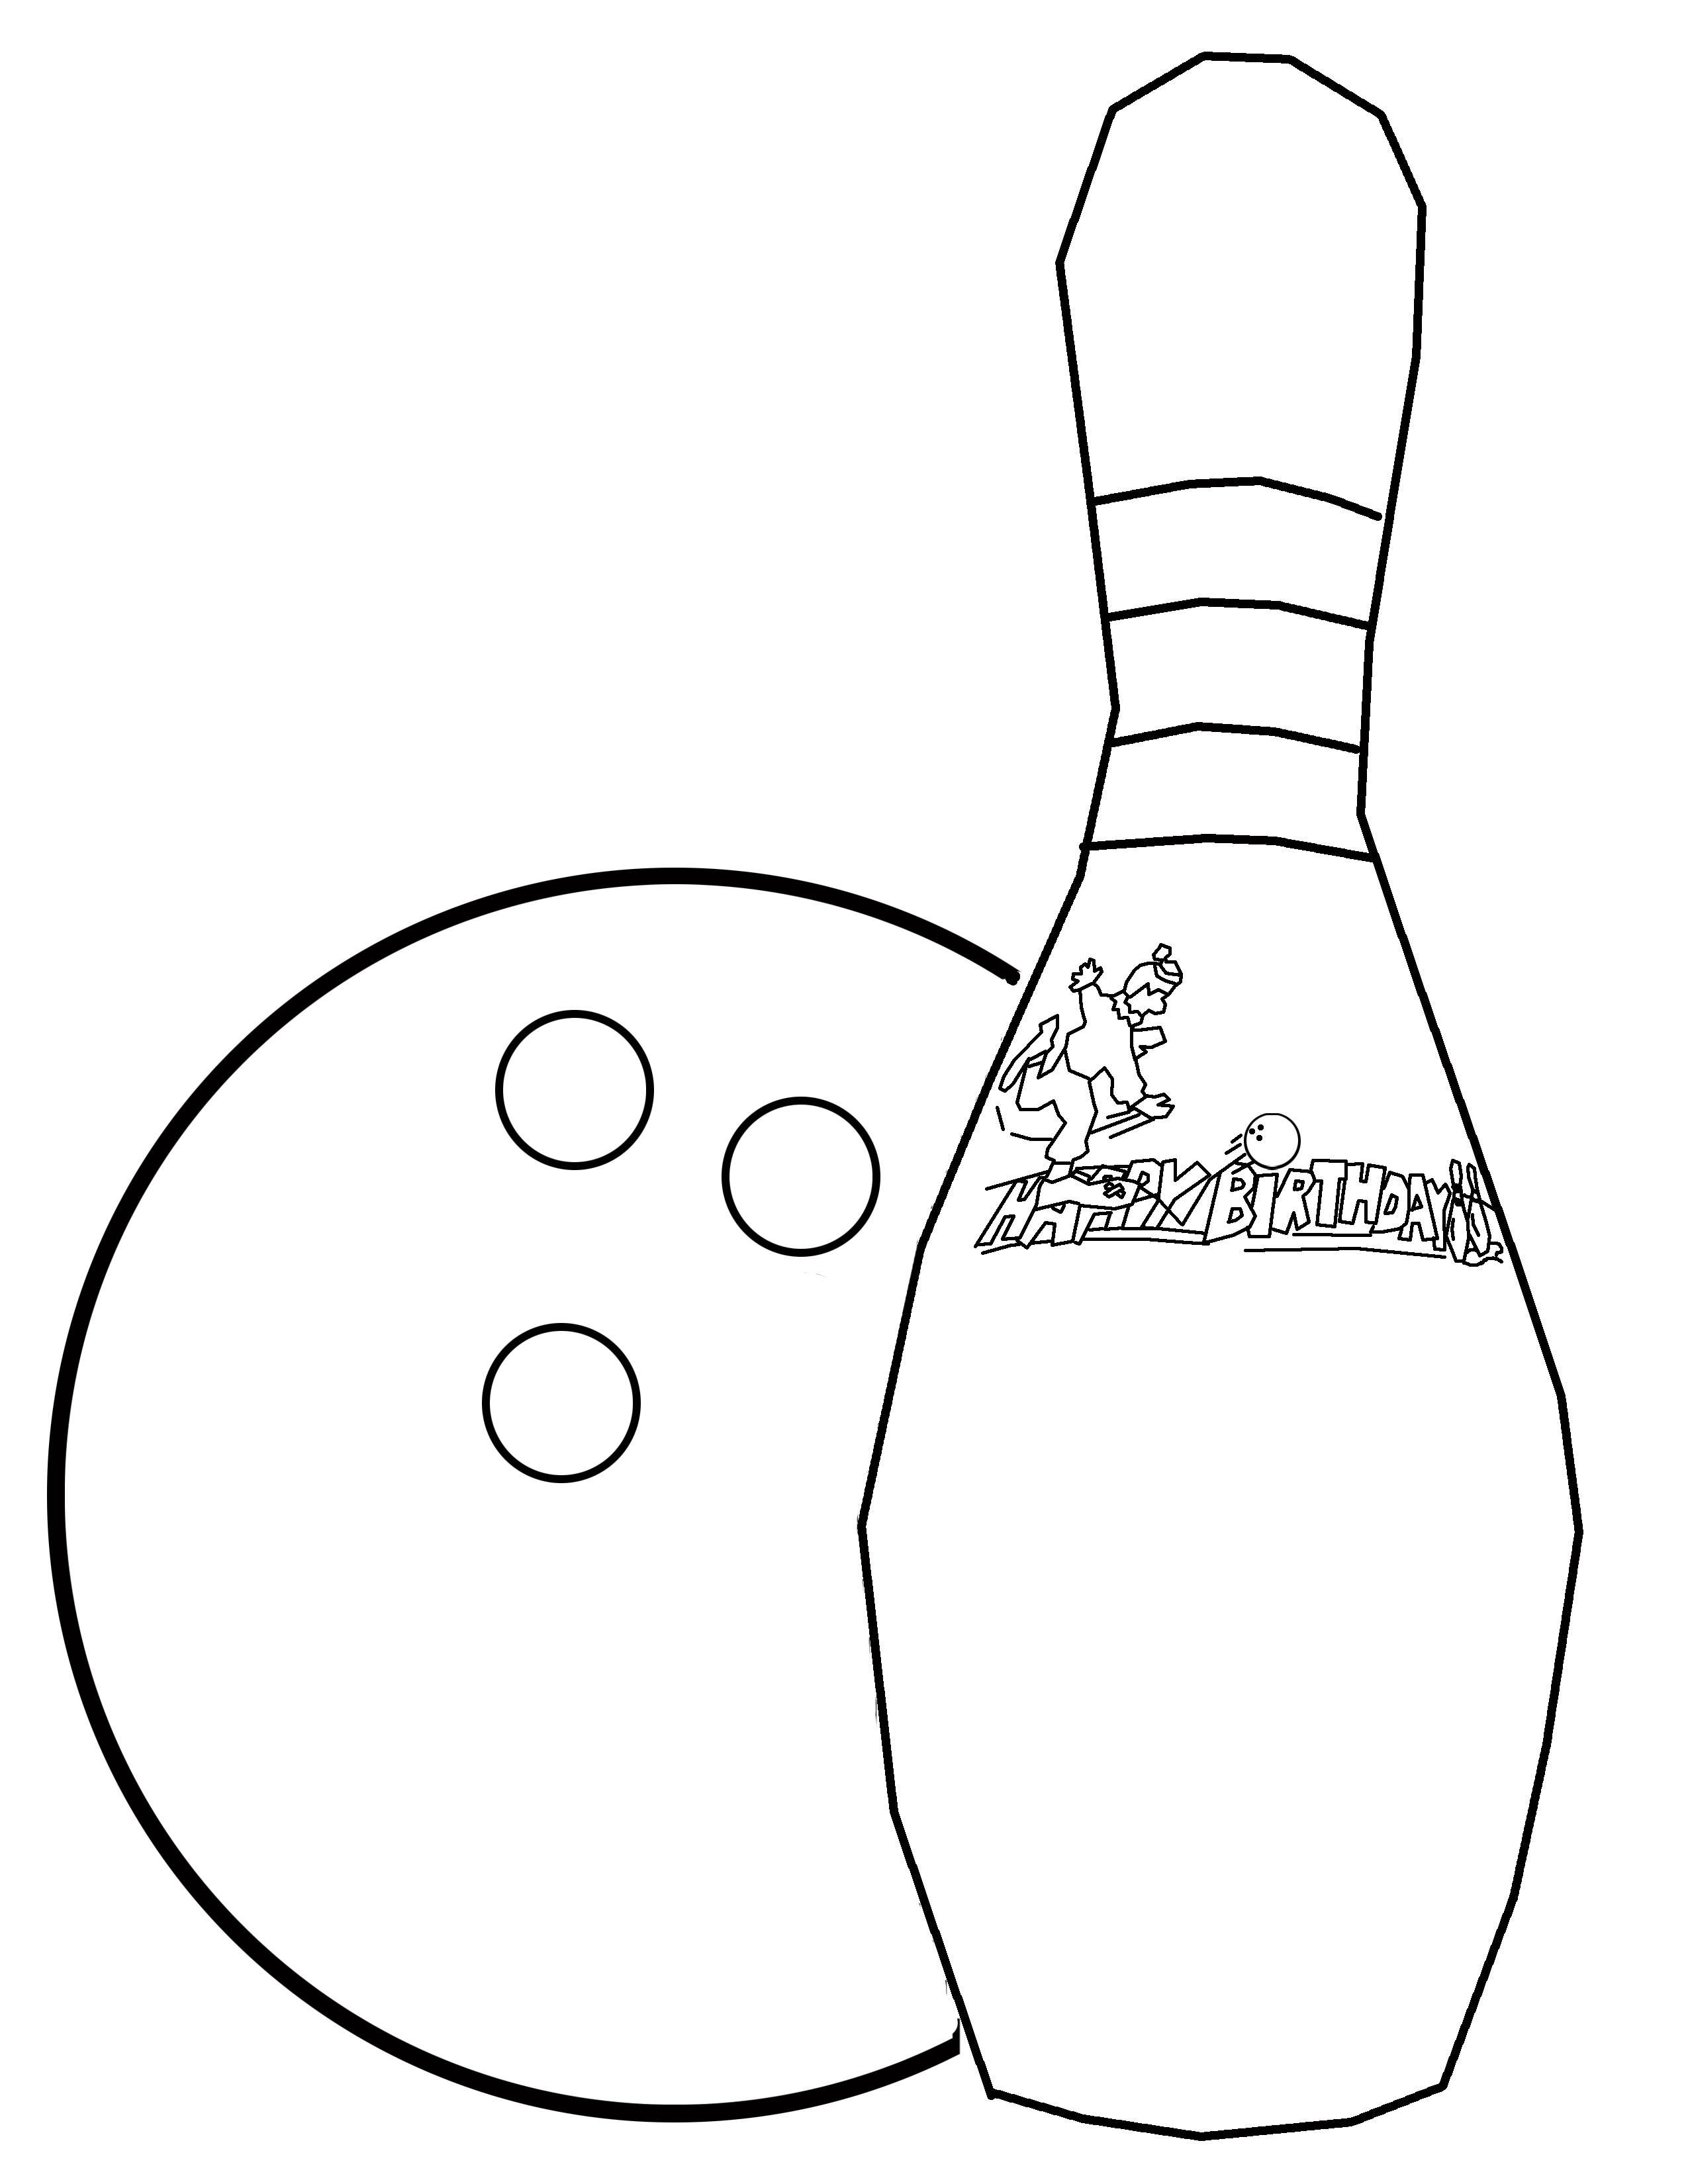 Bowling Coloring 15 Jpeg 2550 3300 Coloring Pages Bowling